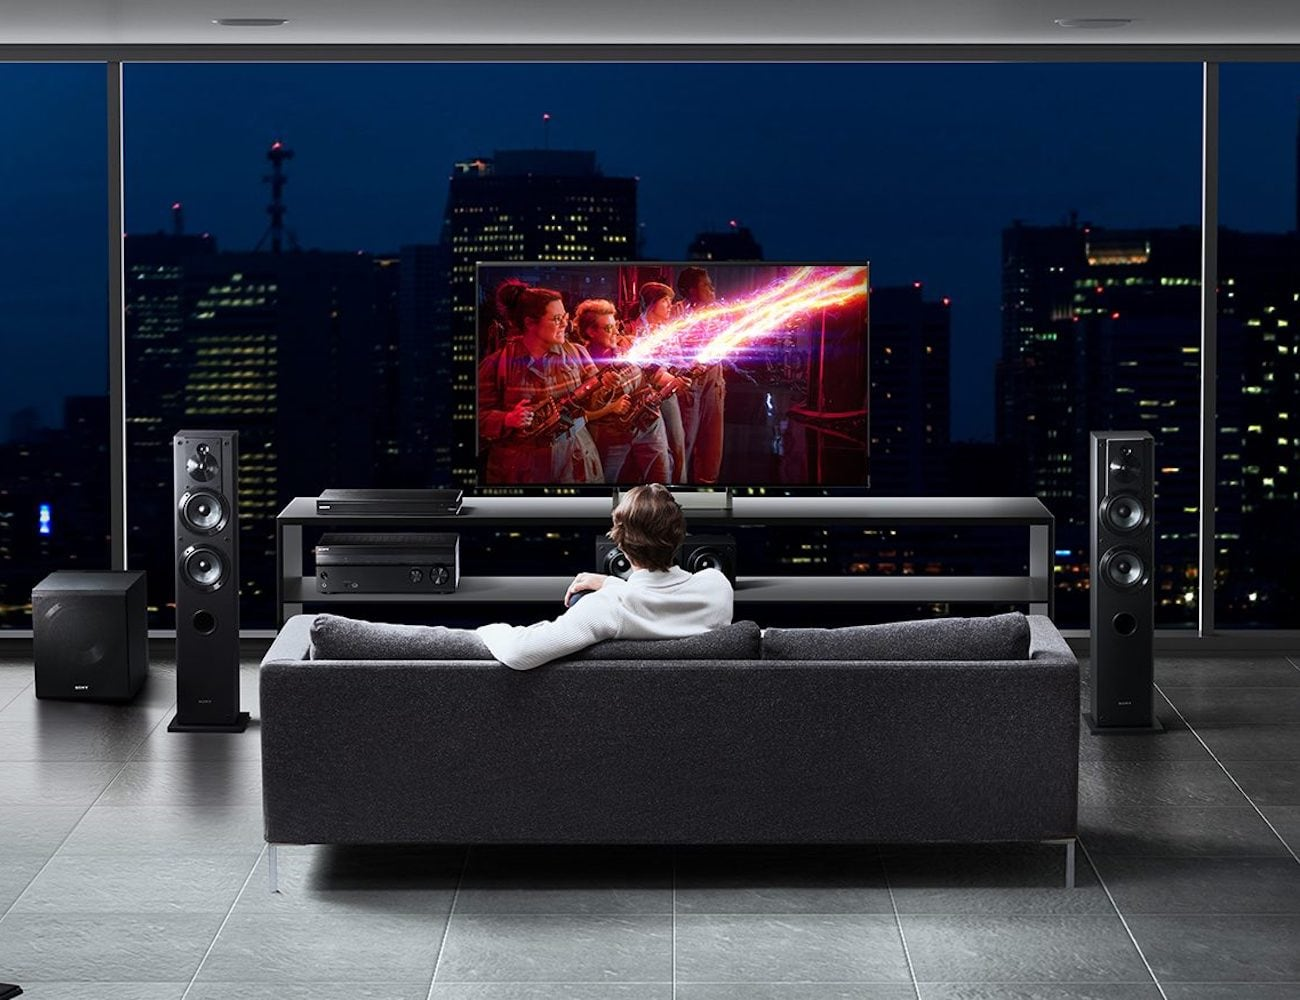 Sony 4K UHD Blu-ray Player completes your home theater setup